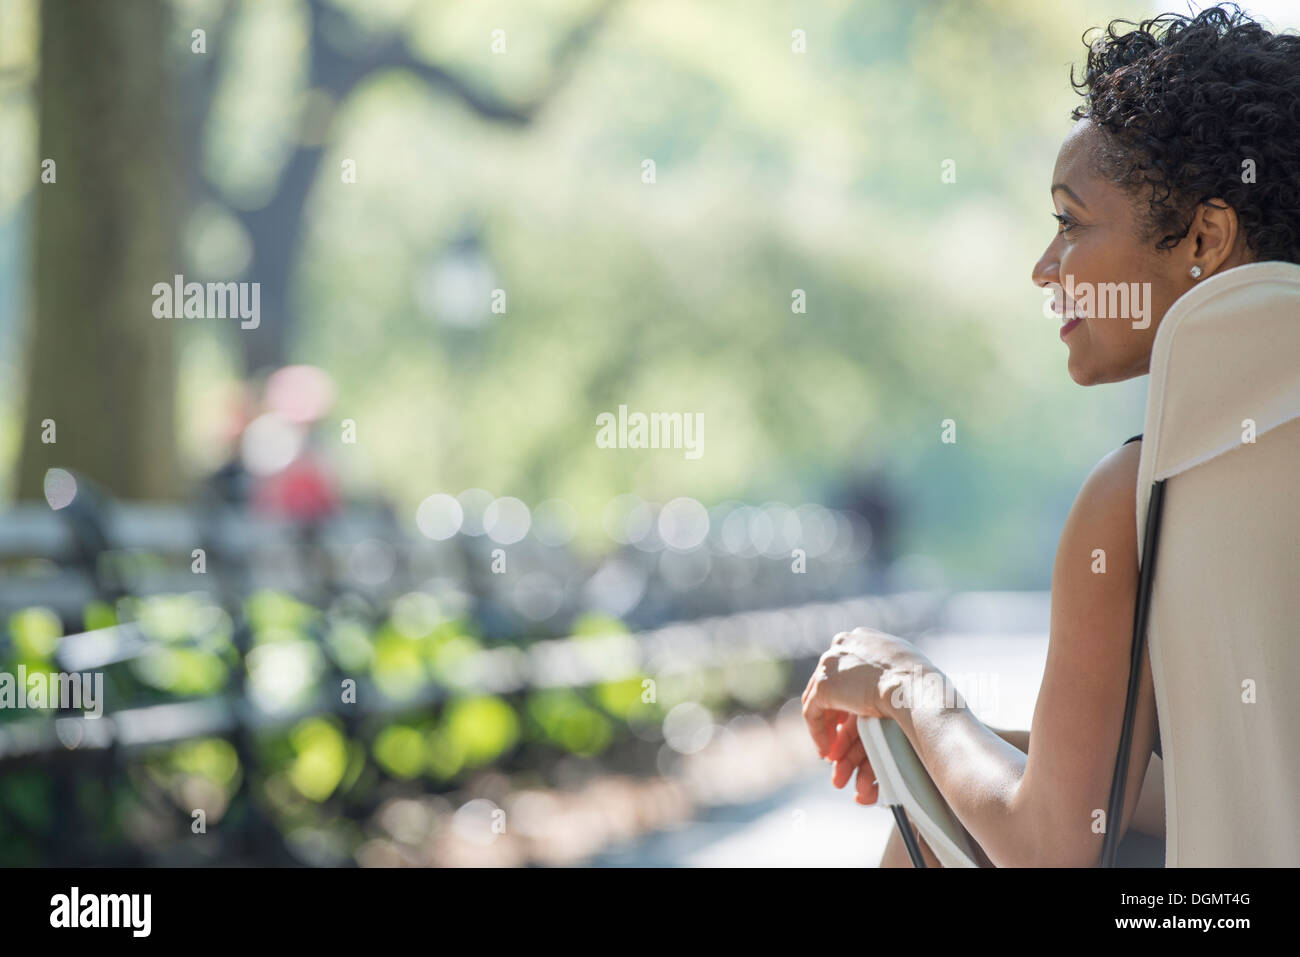 City life. A woman sitting in a camping chair in a city park. - Stock Image